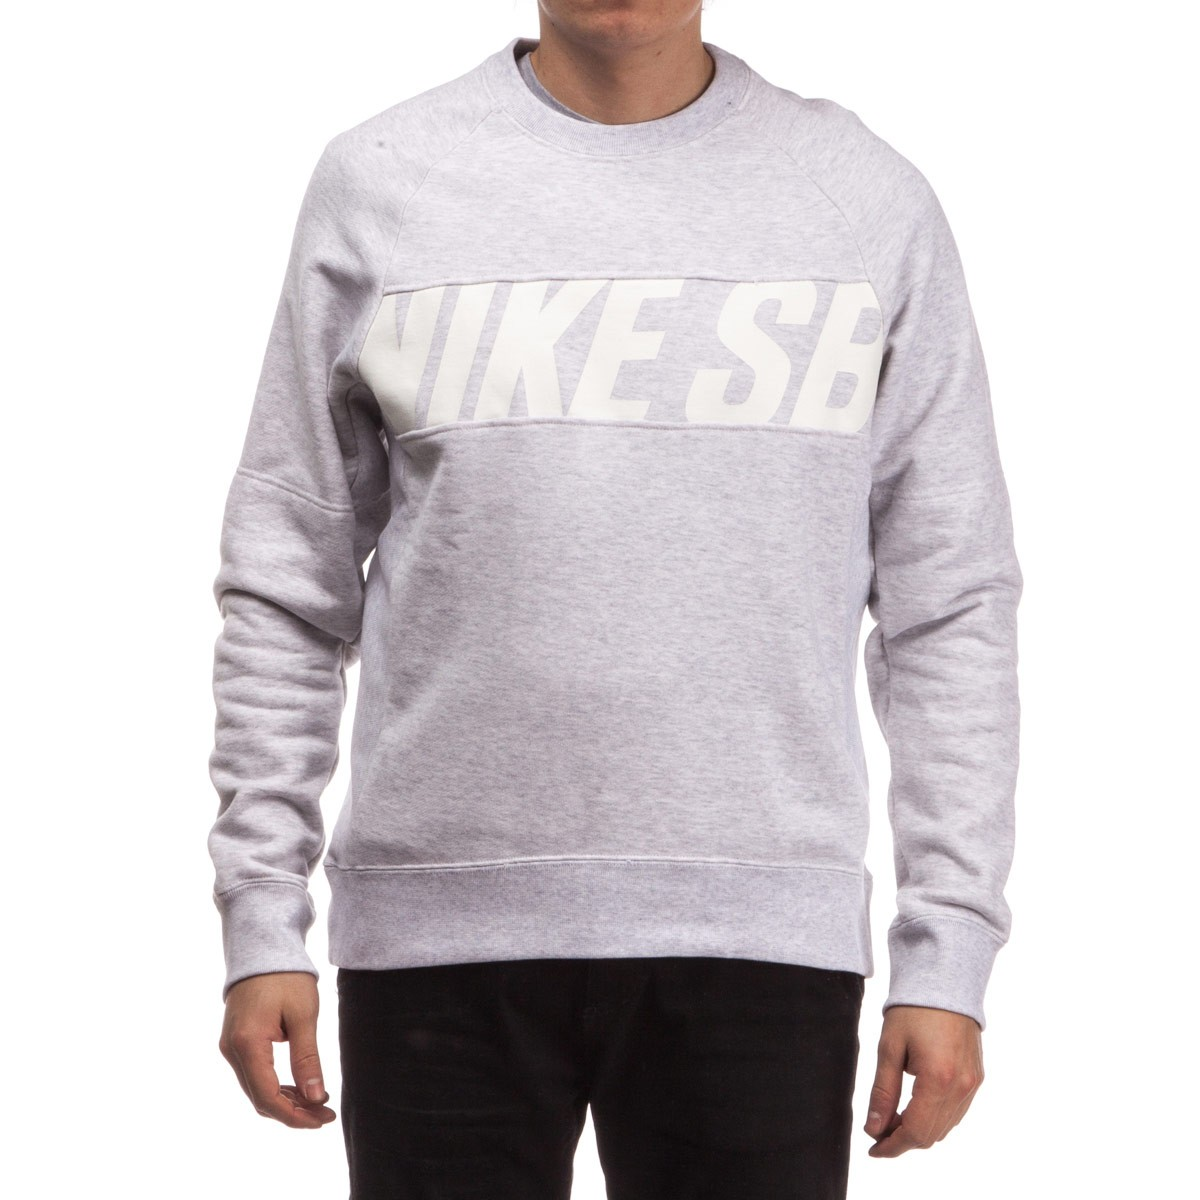 Heatherwhite Motion Sb Everett Sweatshirt Birch Nike Crew n4wqTCx88O